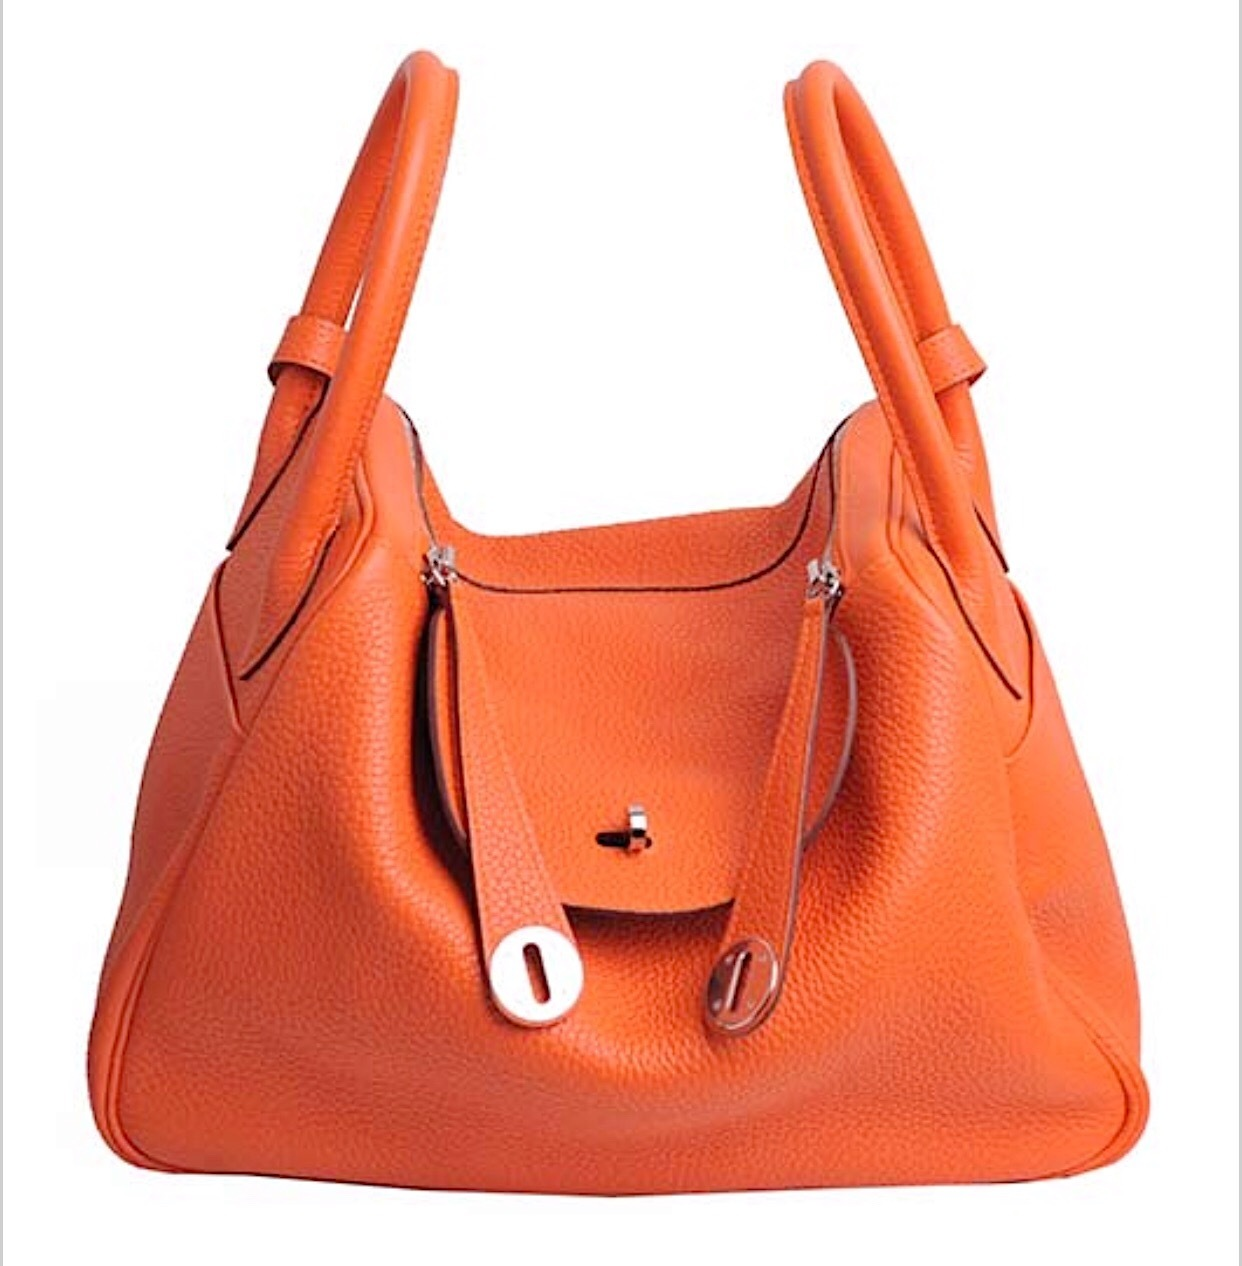 Primary image for 100% Authentic HERMES Taurillon Clemence Lindy 34 ORANGE Shoulder Bag PHW